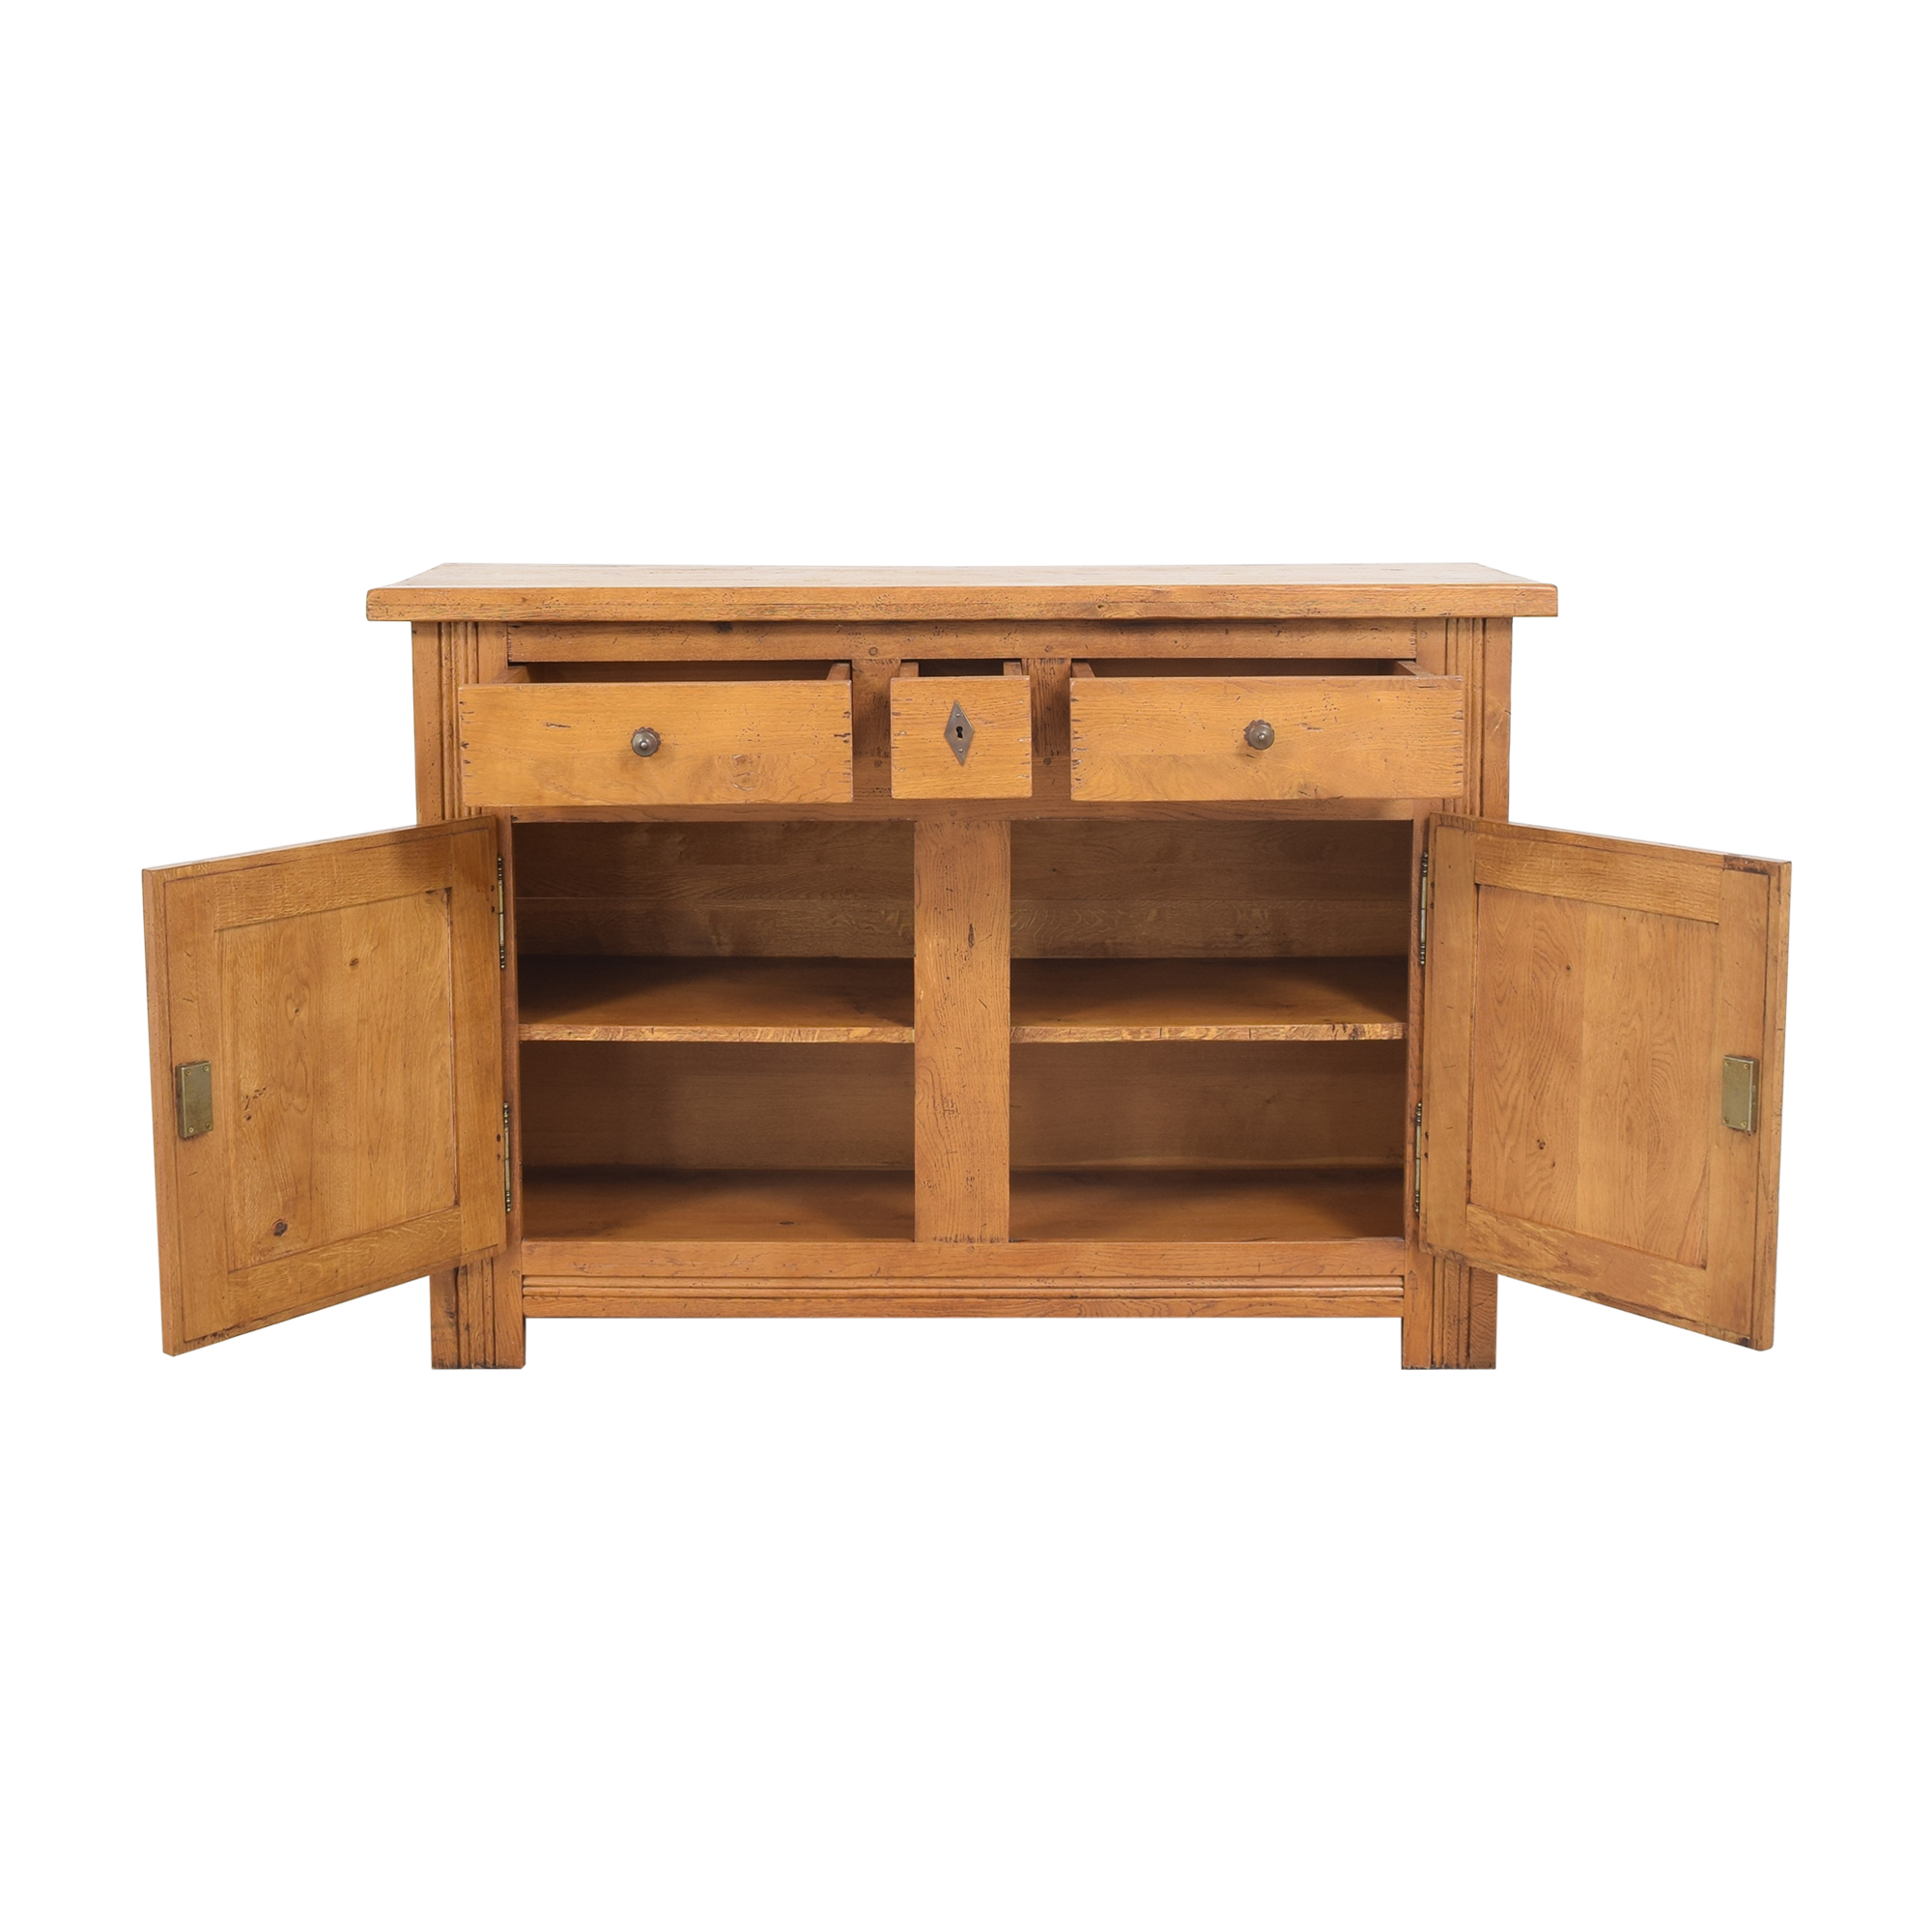 Crate and Barrel Two Door Sideboard / Storage